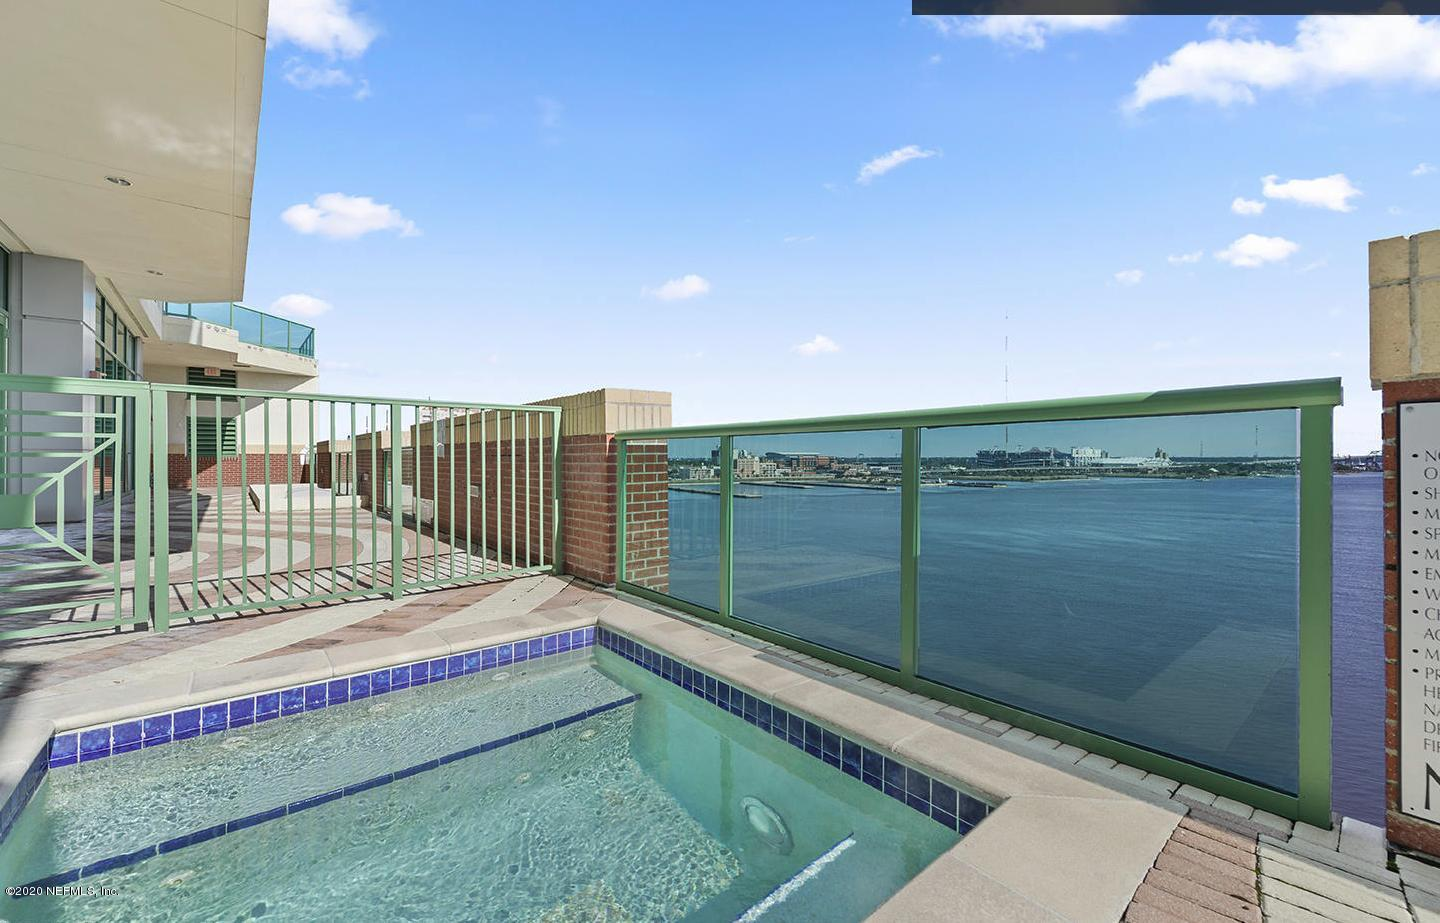 1431 RIVERPLACE, JACKSONVILLE, FLORIDA 32207, 2 Bedrooms Bedrooms, ,2 BathroomsBathrooms,Residential,For sale,RIVERPLACE,1043697